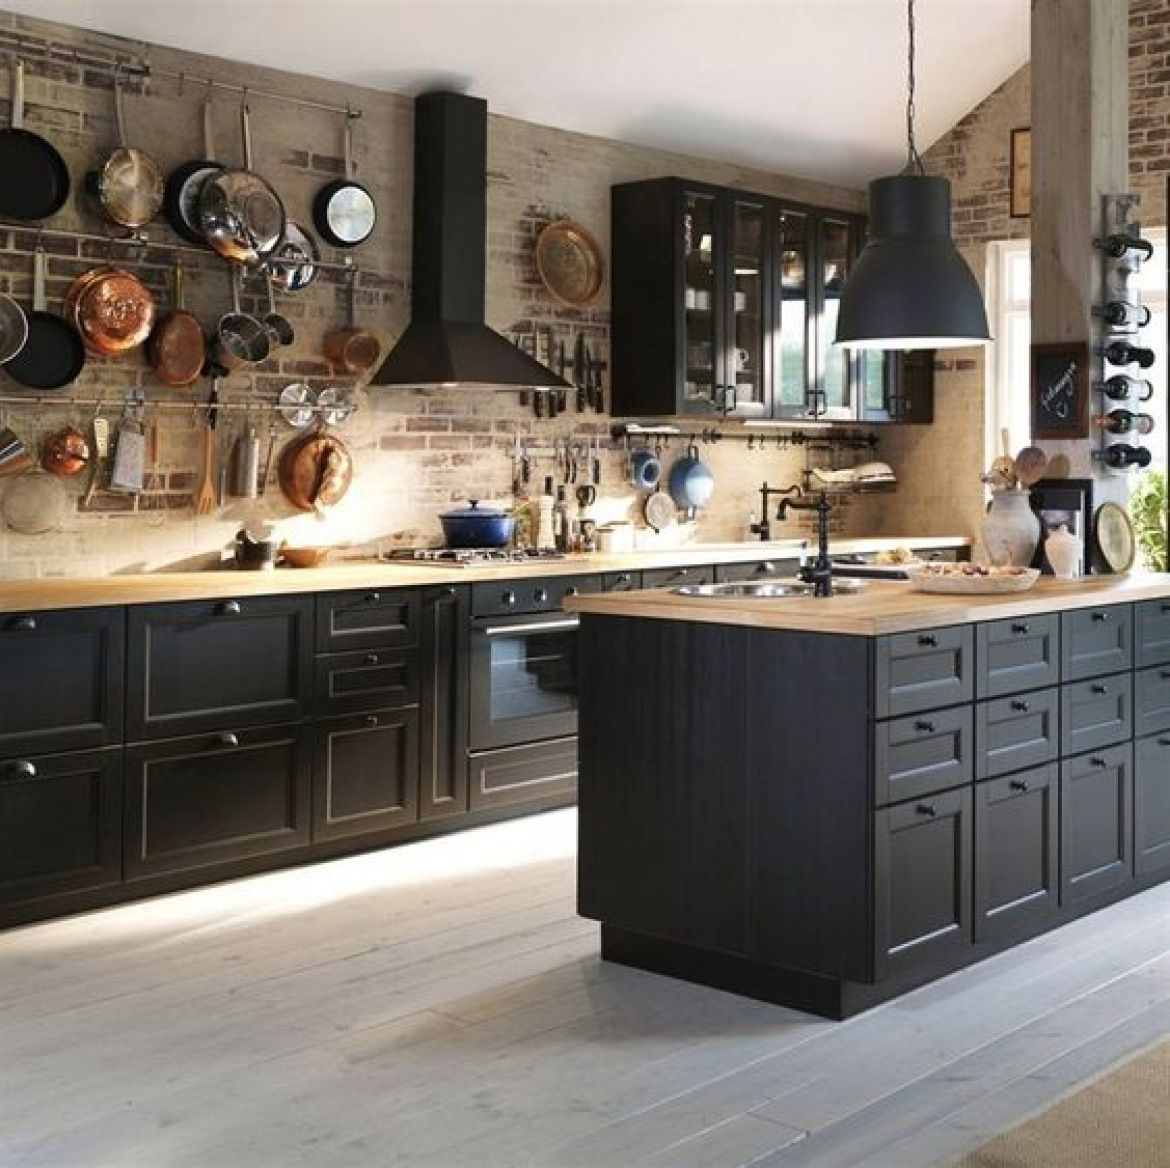 Rustic Black Kitchen Kitchen Interior Kitchen Cabinet Design Kitchen Inspirations